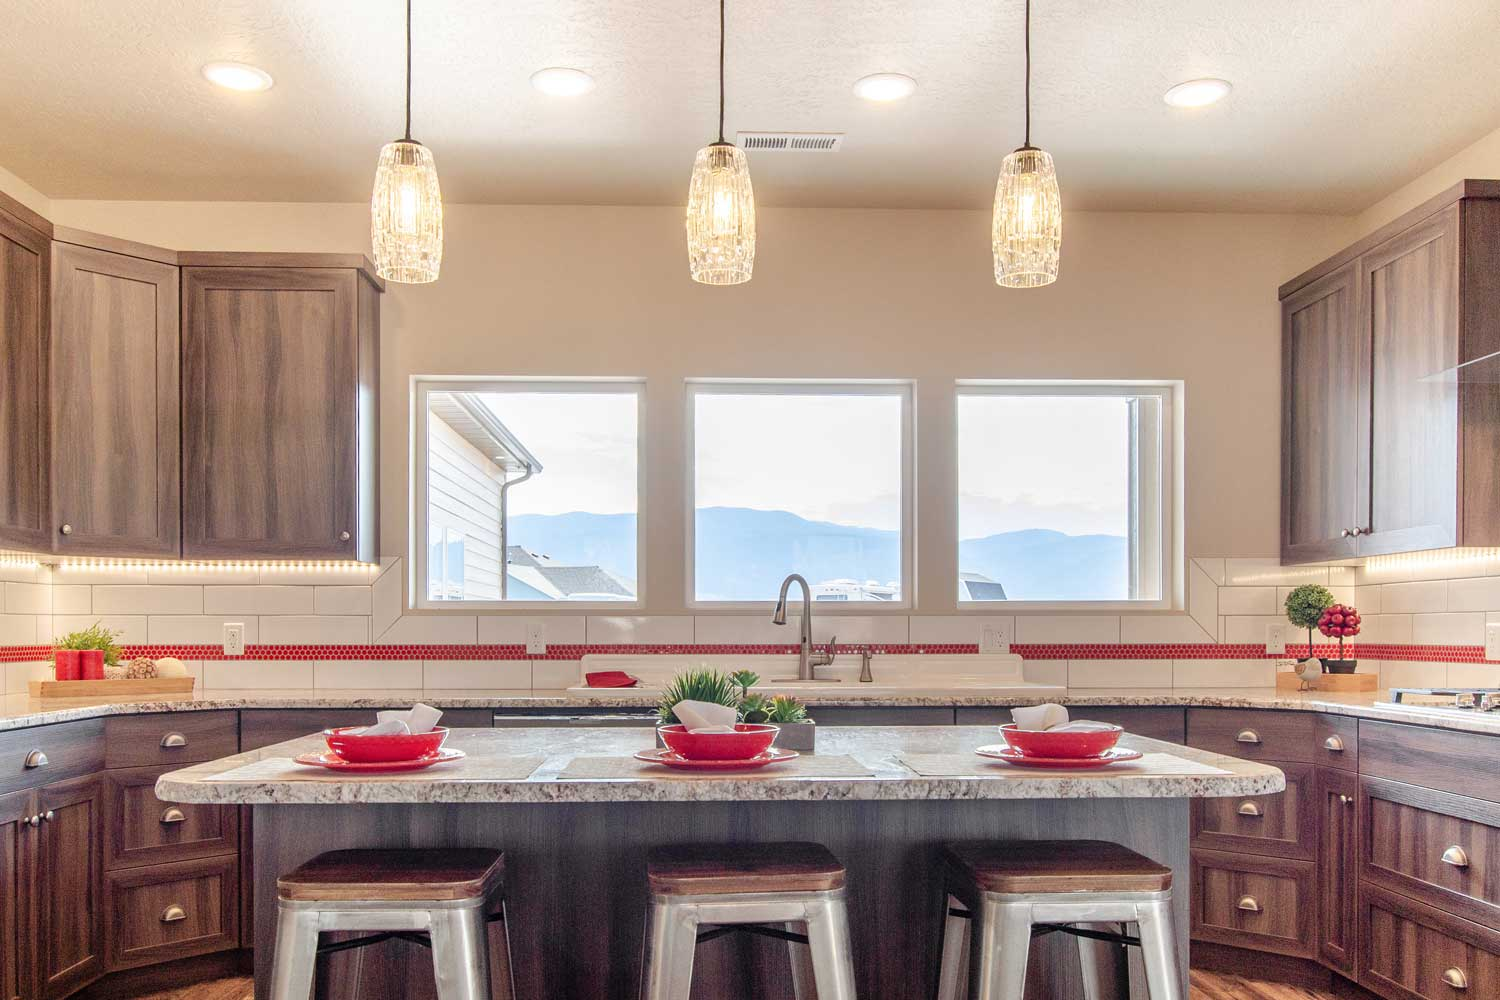 kitchen area showing tile backspace with red accents through the middle, three windows above the sink, drop ceiling lighting, three bar stools made of silver metal and wood tops